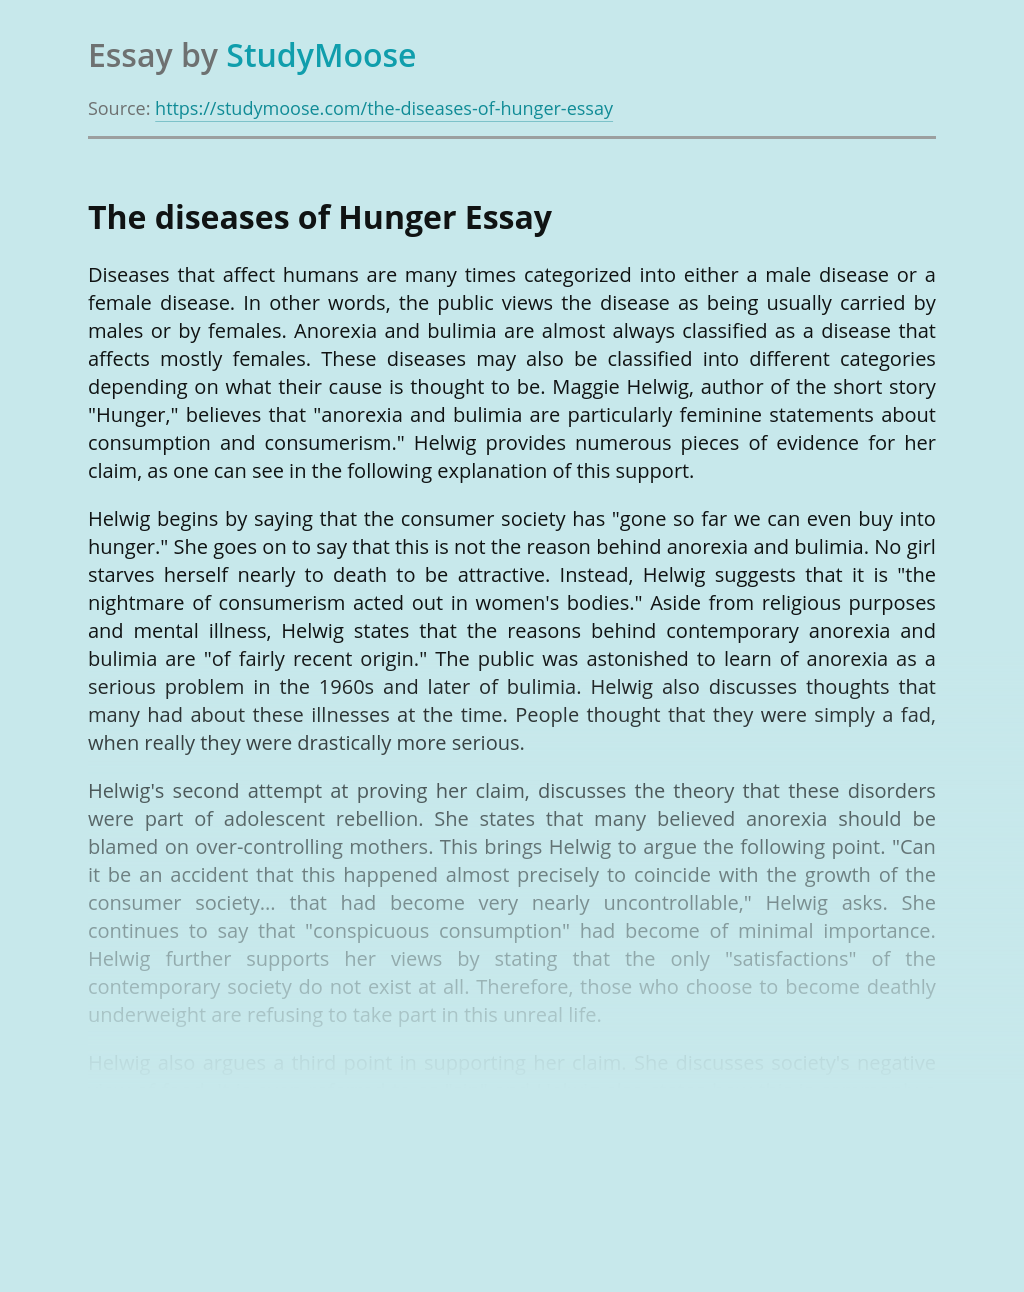 The diseases of Hunger